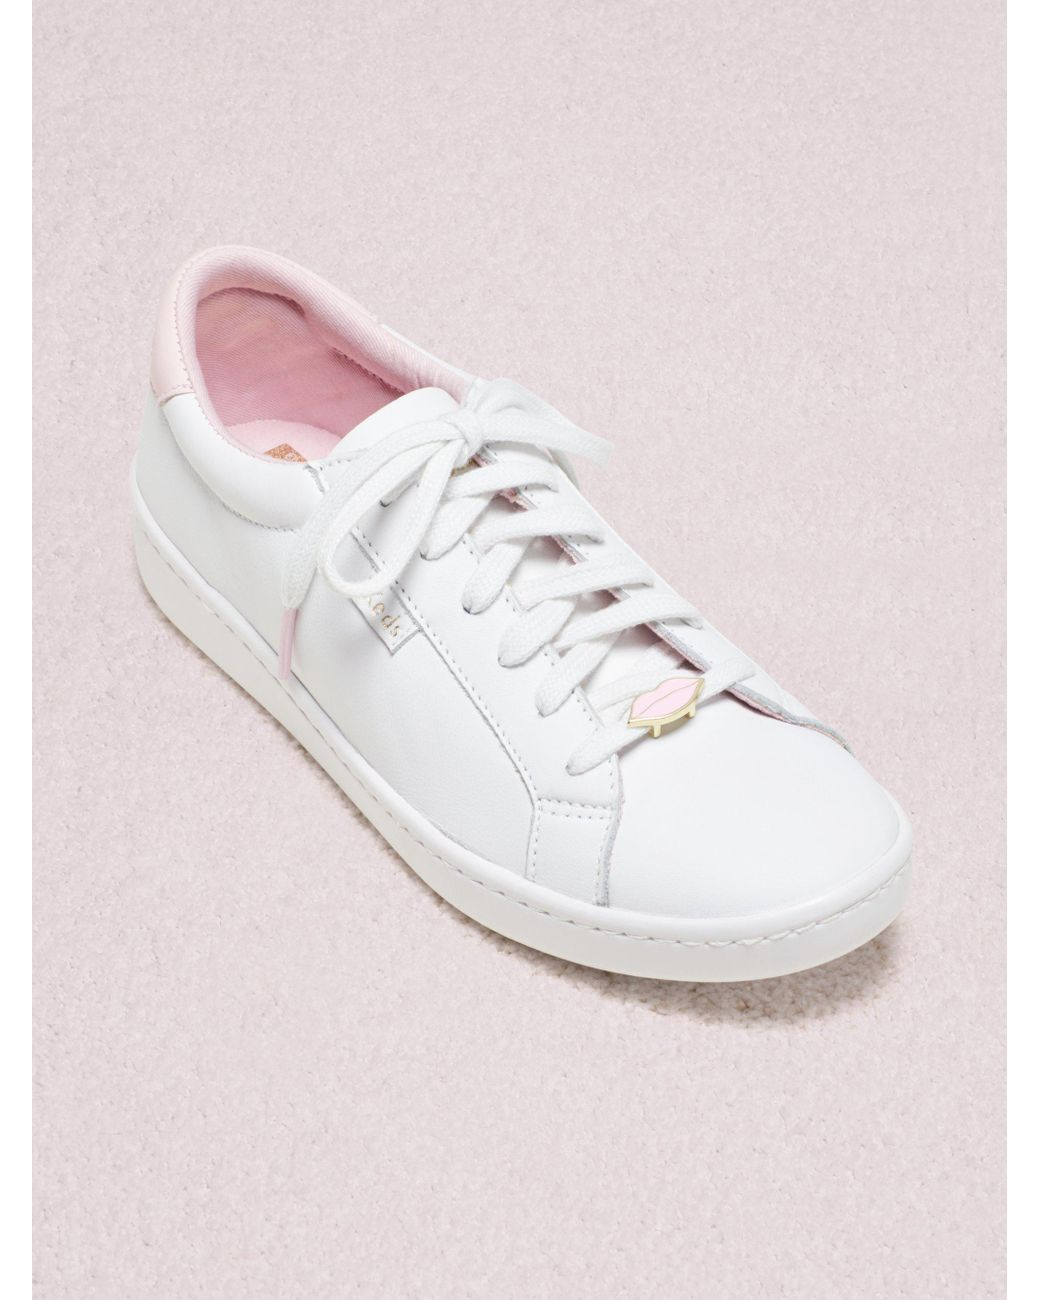 54215fdbd78a Lyst - Kate Spade Keds X New York Ace Lips Hearts Sneakers in White